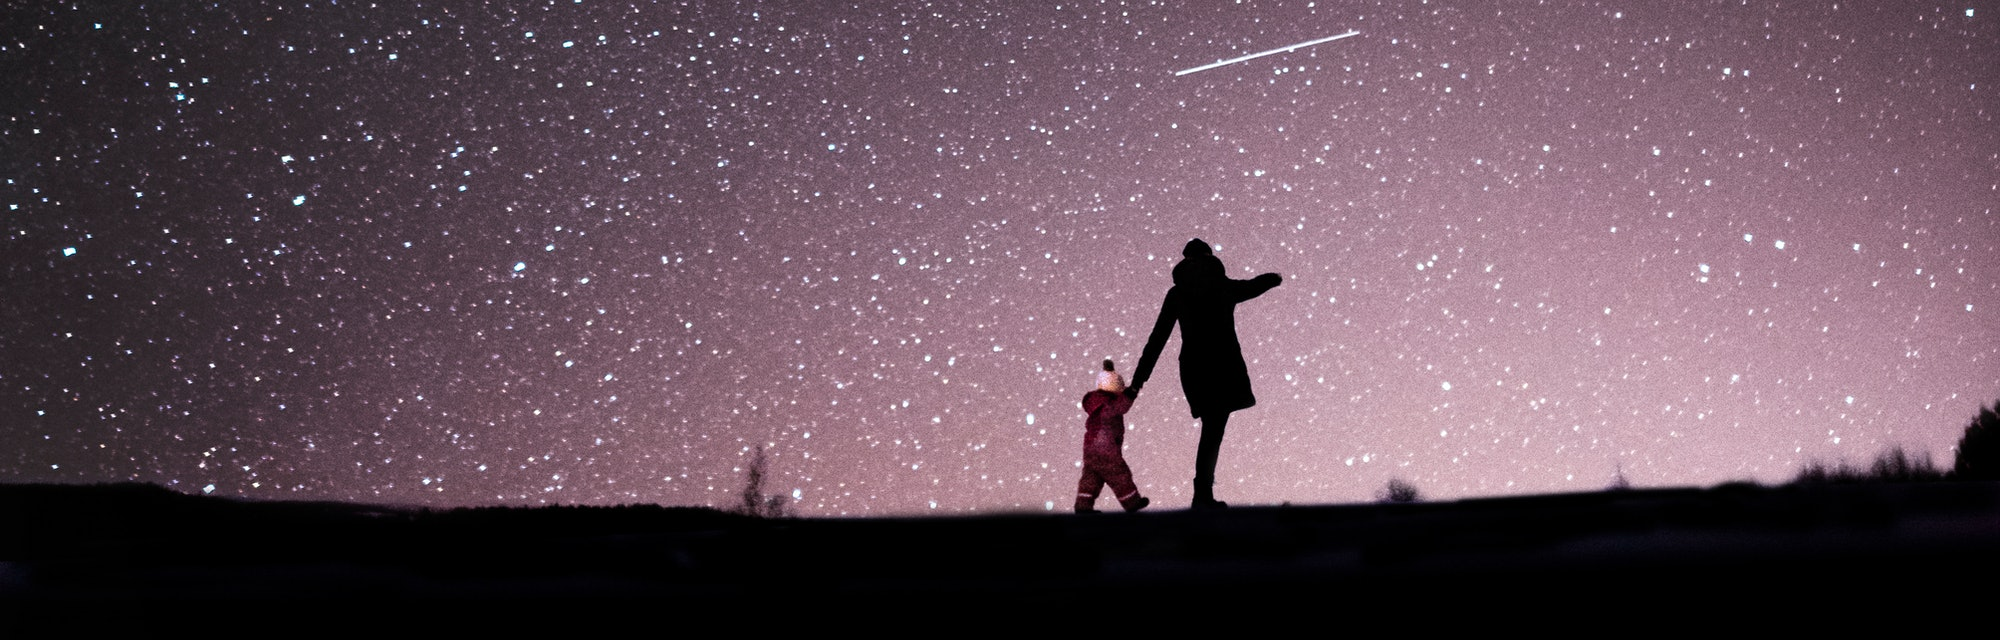 A mother and child in a dark field, seen from afar, under a glorious night sky filled with stars.